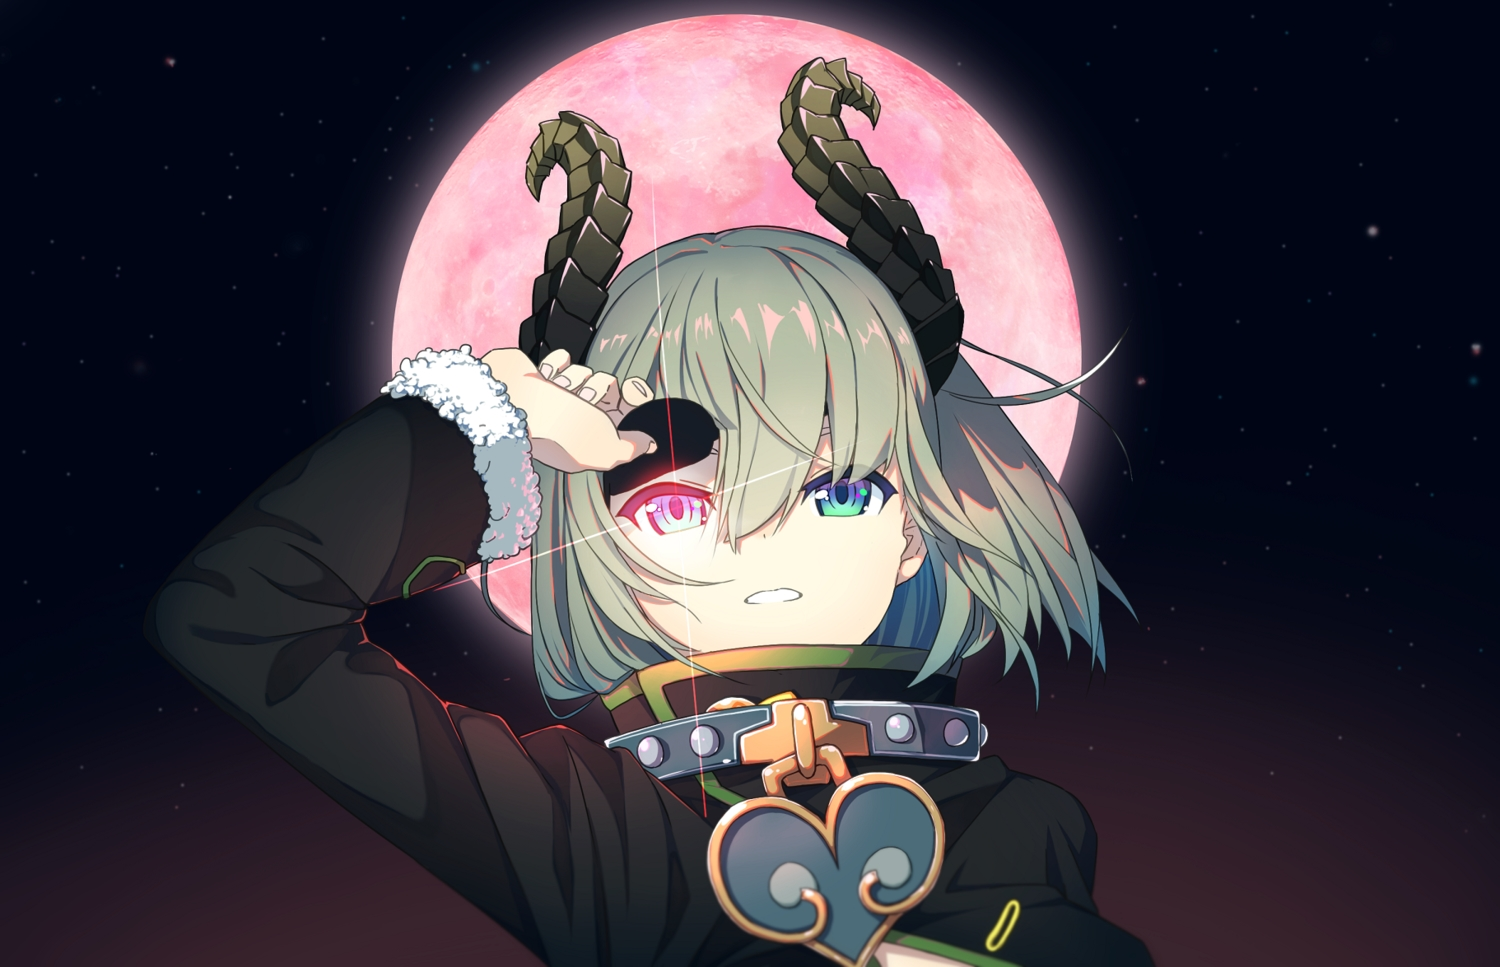 bicolored_eyes collar demon eyepatch gray_hair honey_strap horns moon sekishiro_mico short_hair sky stars tunamayochan